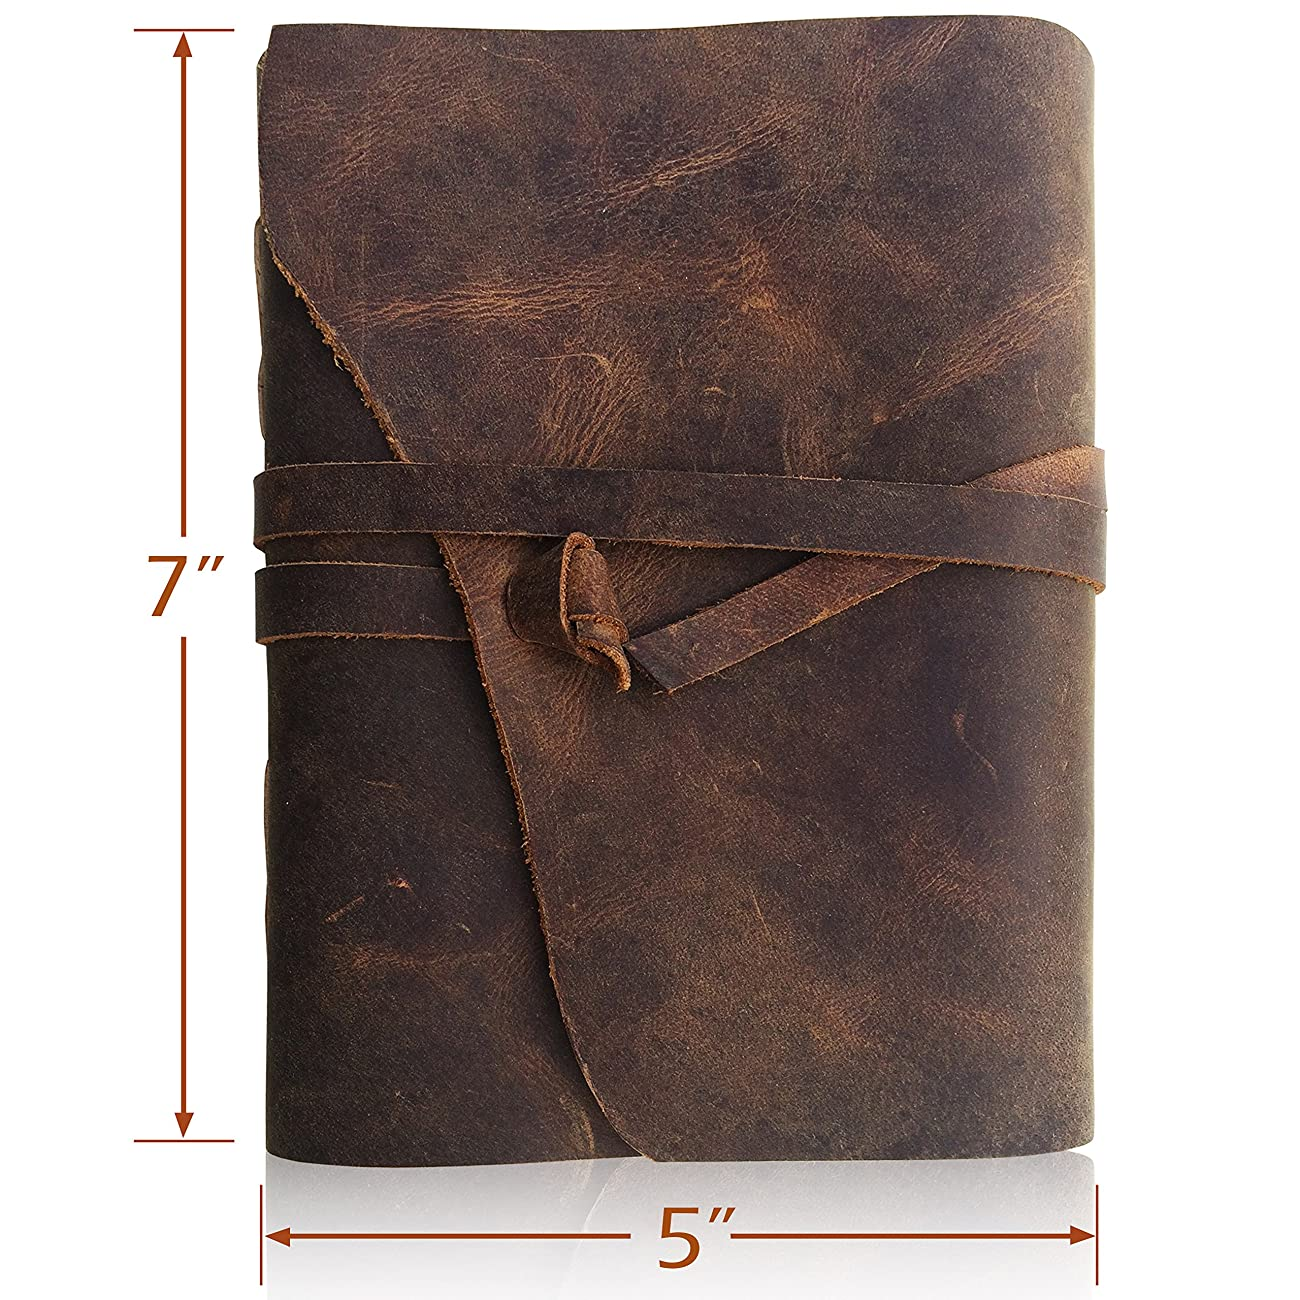 Leather Journal Writing Notebook, Antique Handmade Leather Bound Daily Notepad For Men & Women, Unlined Paper 7 x 5 Inches, Perfect Gift for Art Sketchbook, Travel Diary & Notebooks to Write in 0